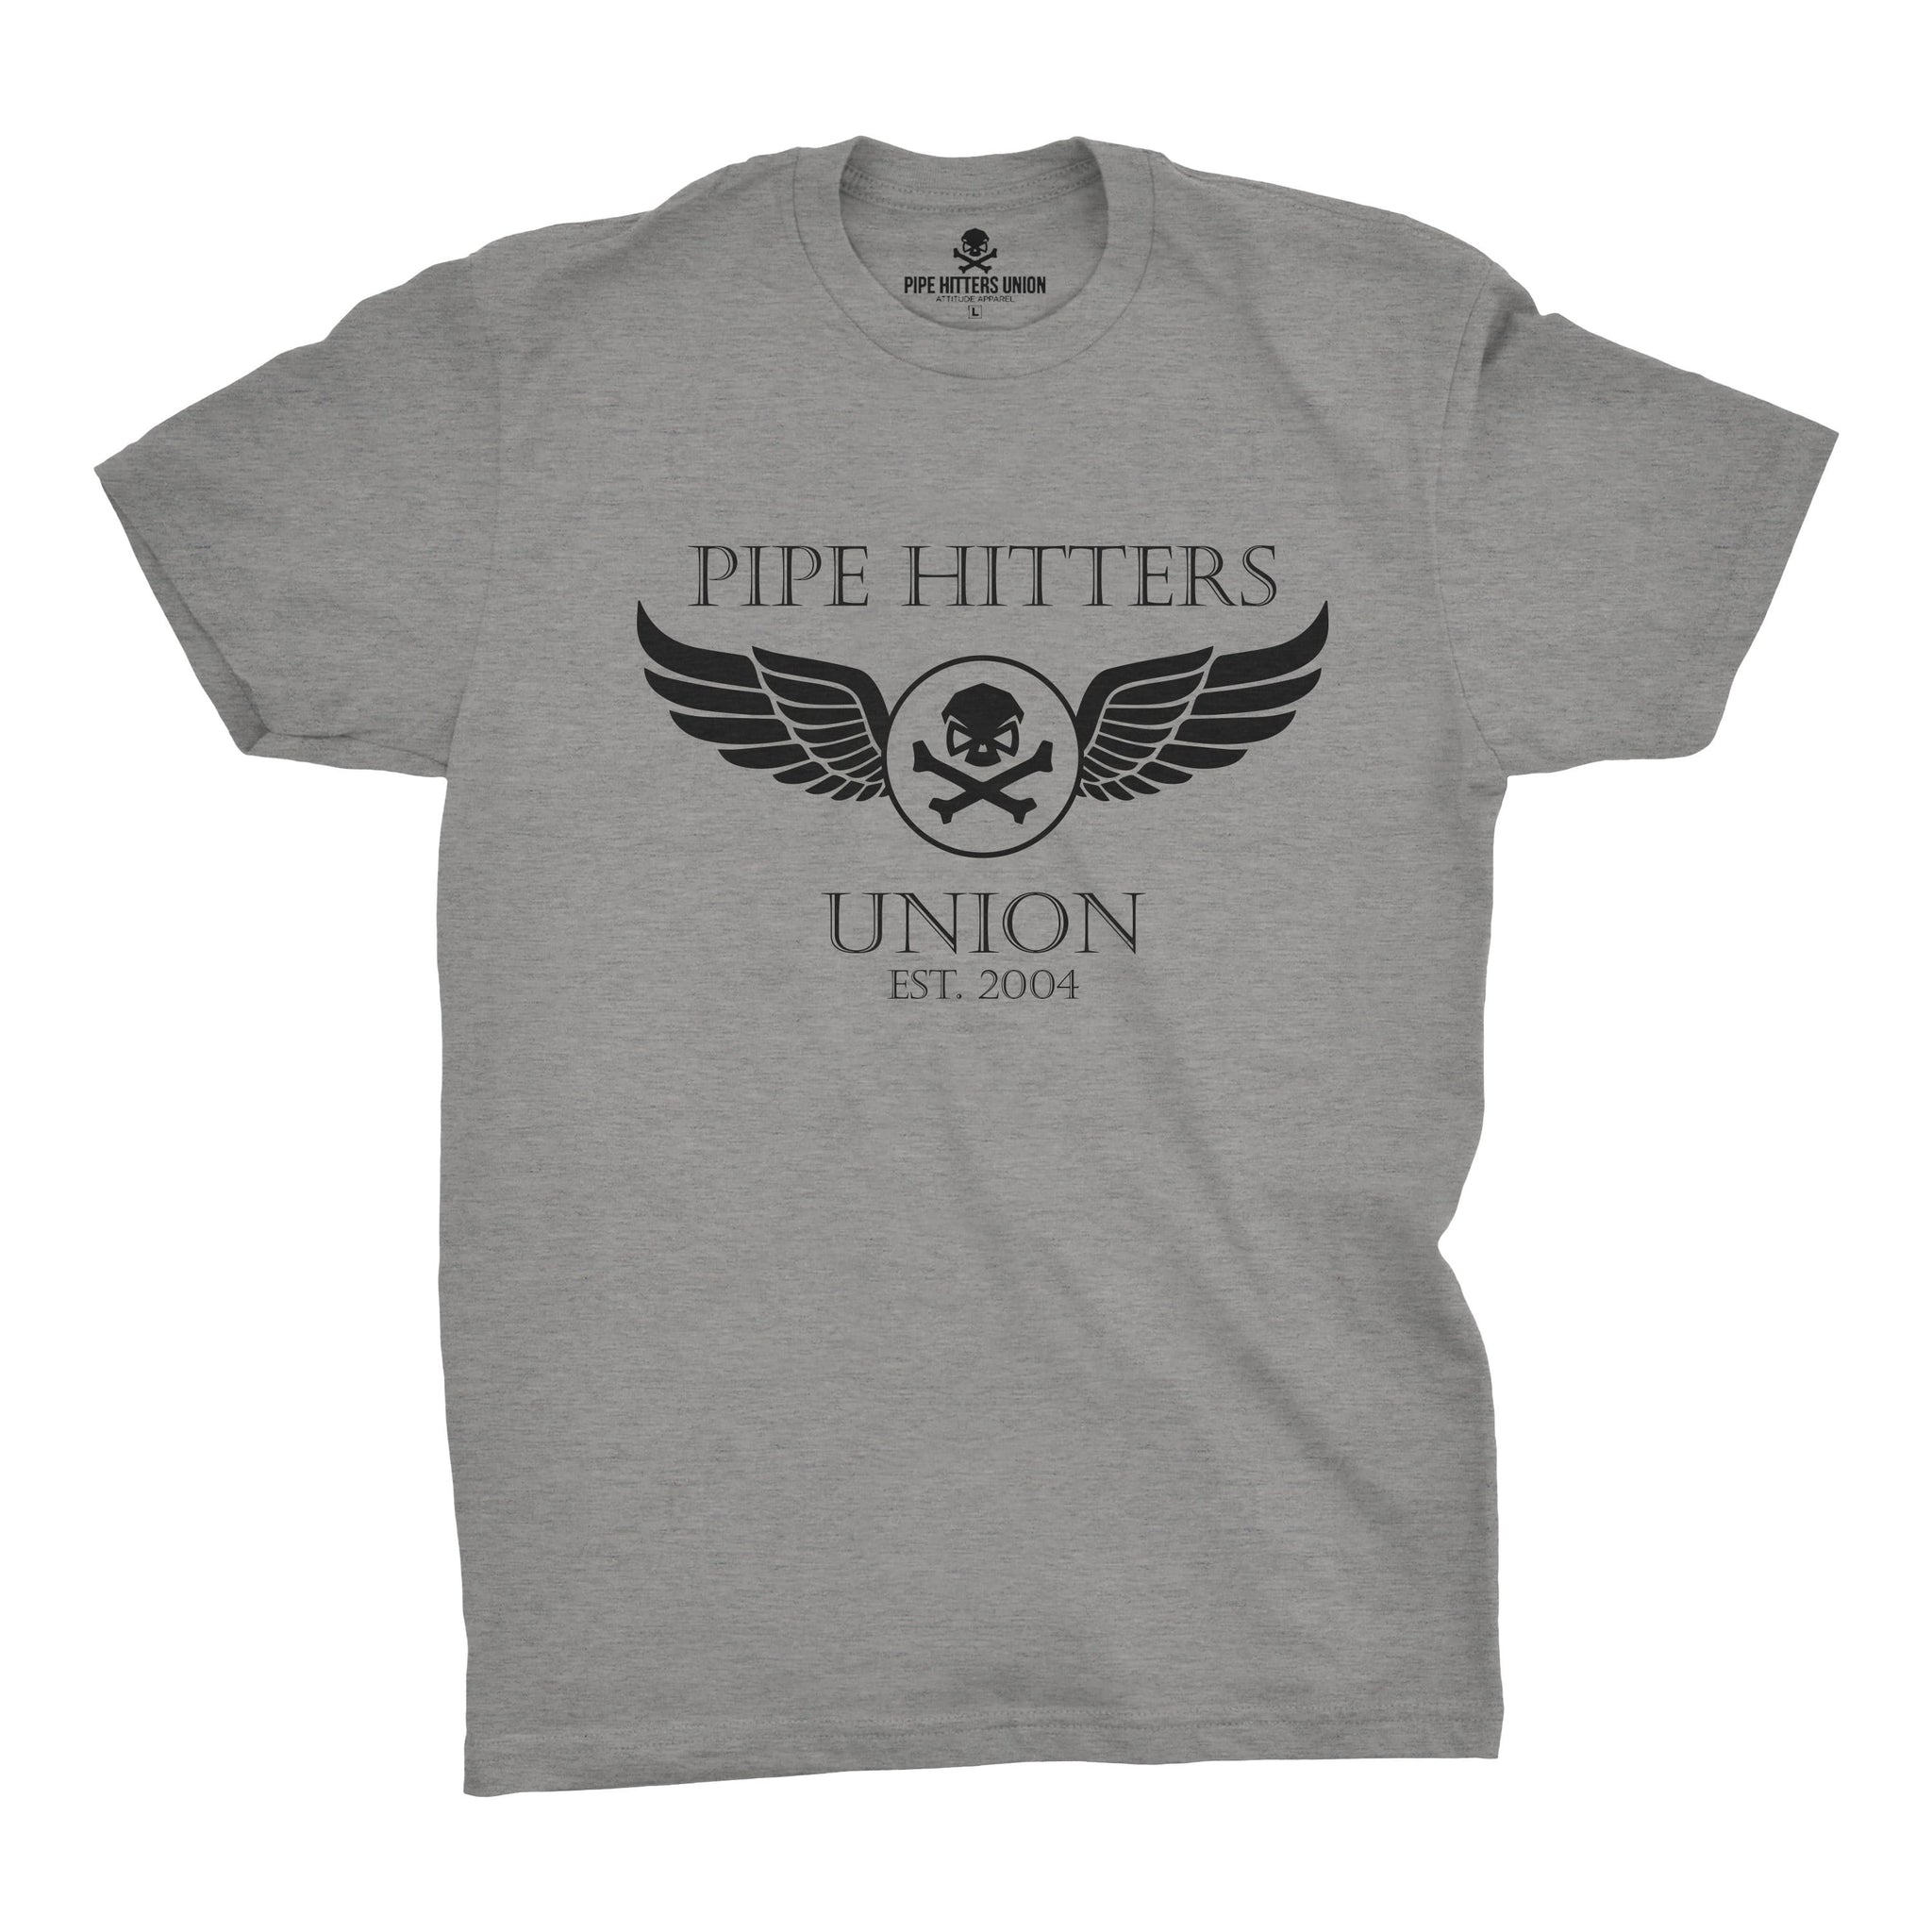 Wings - Grey - T-Shirts - Pipe Hitters Union